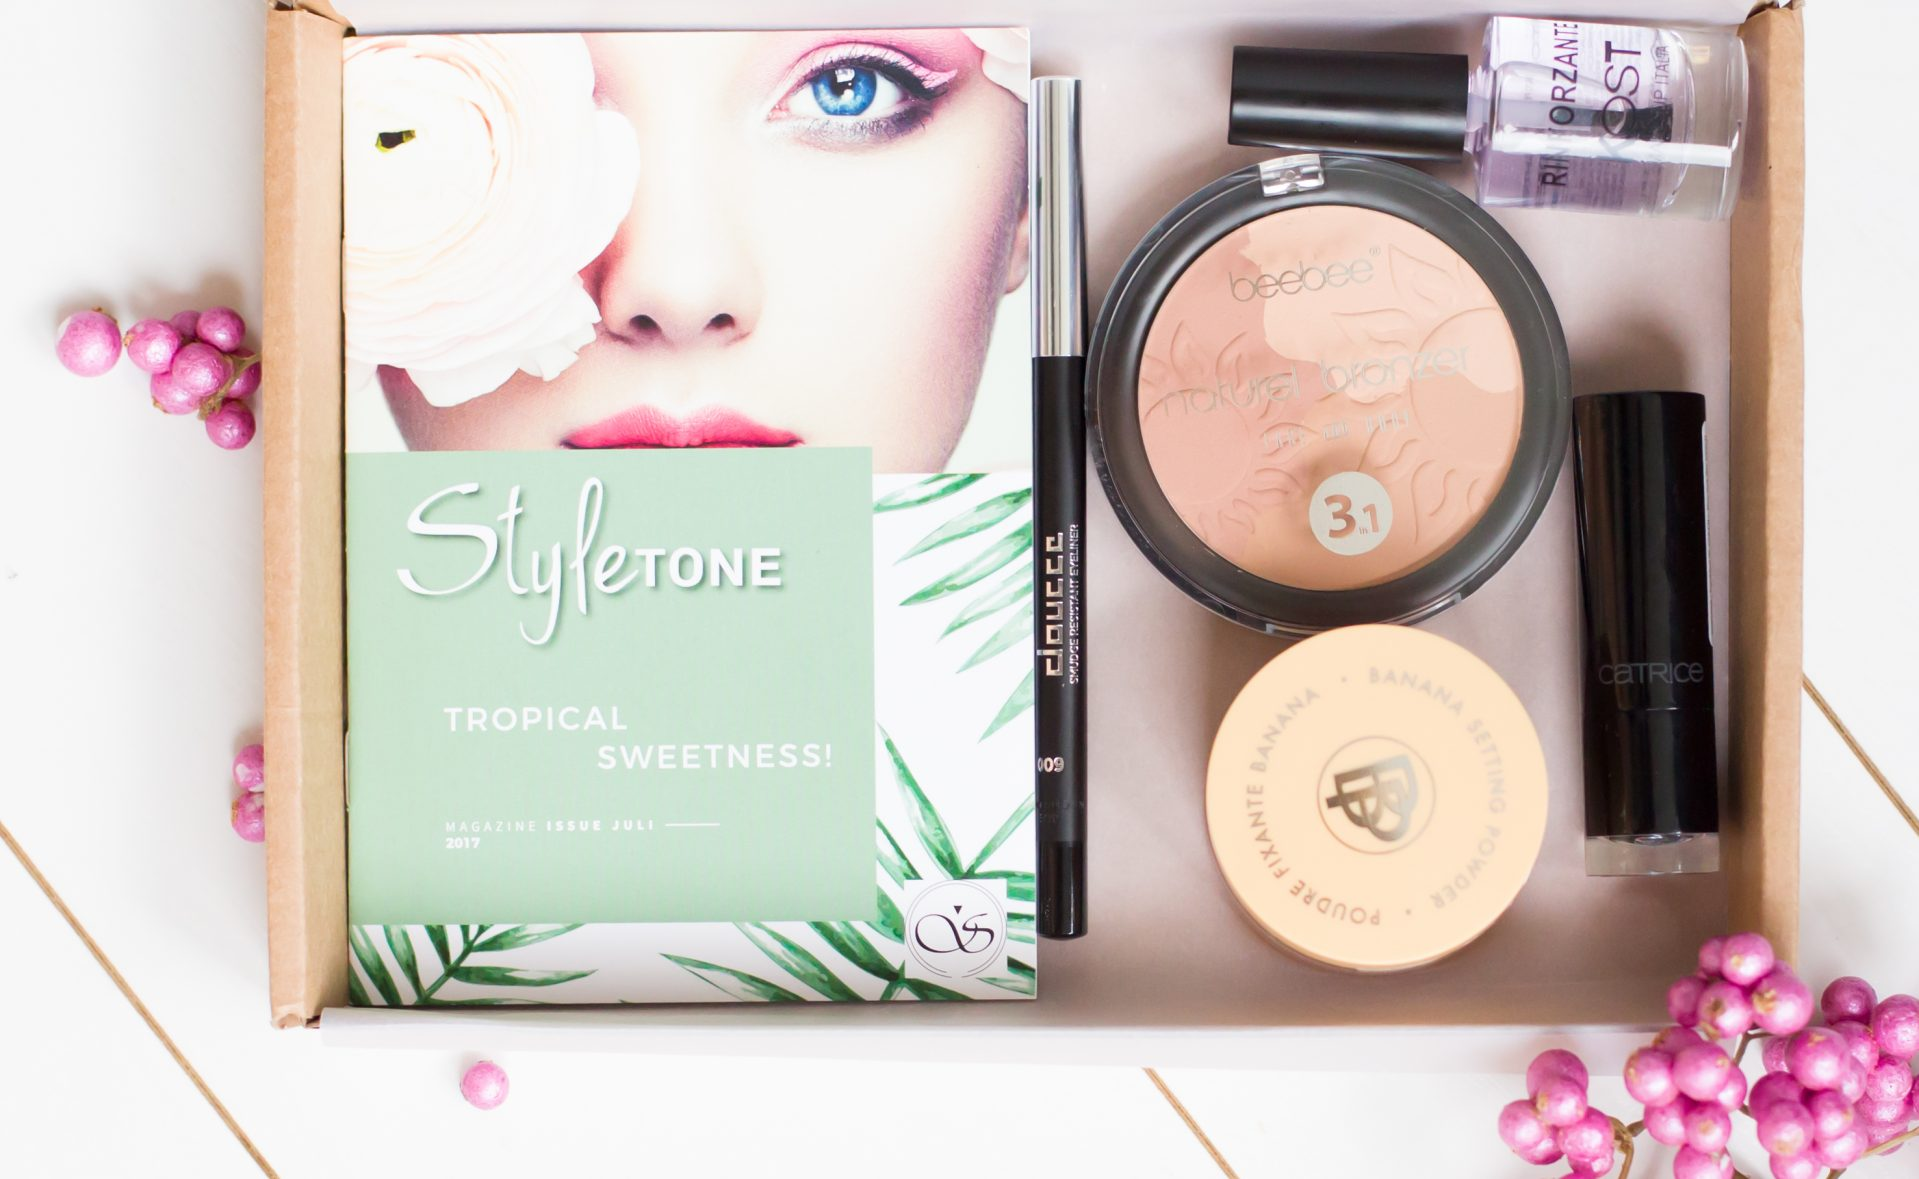 Alle producten in de box - StyleTone juli box